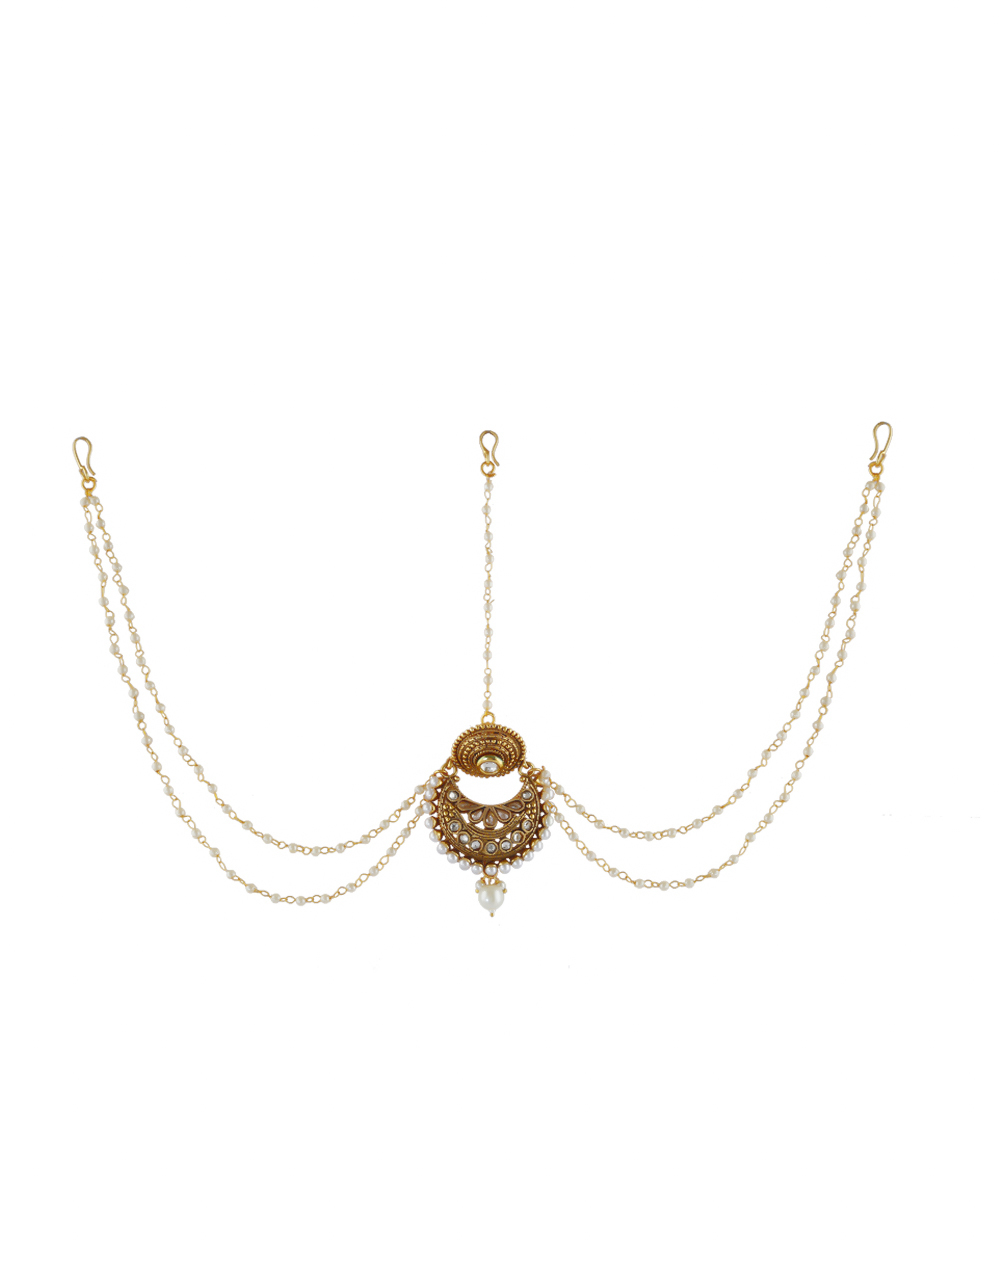 Antique Gold Finish Styled With Pearls Beads Fancy Matha Patti